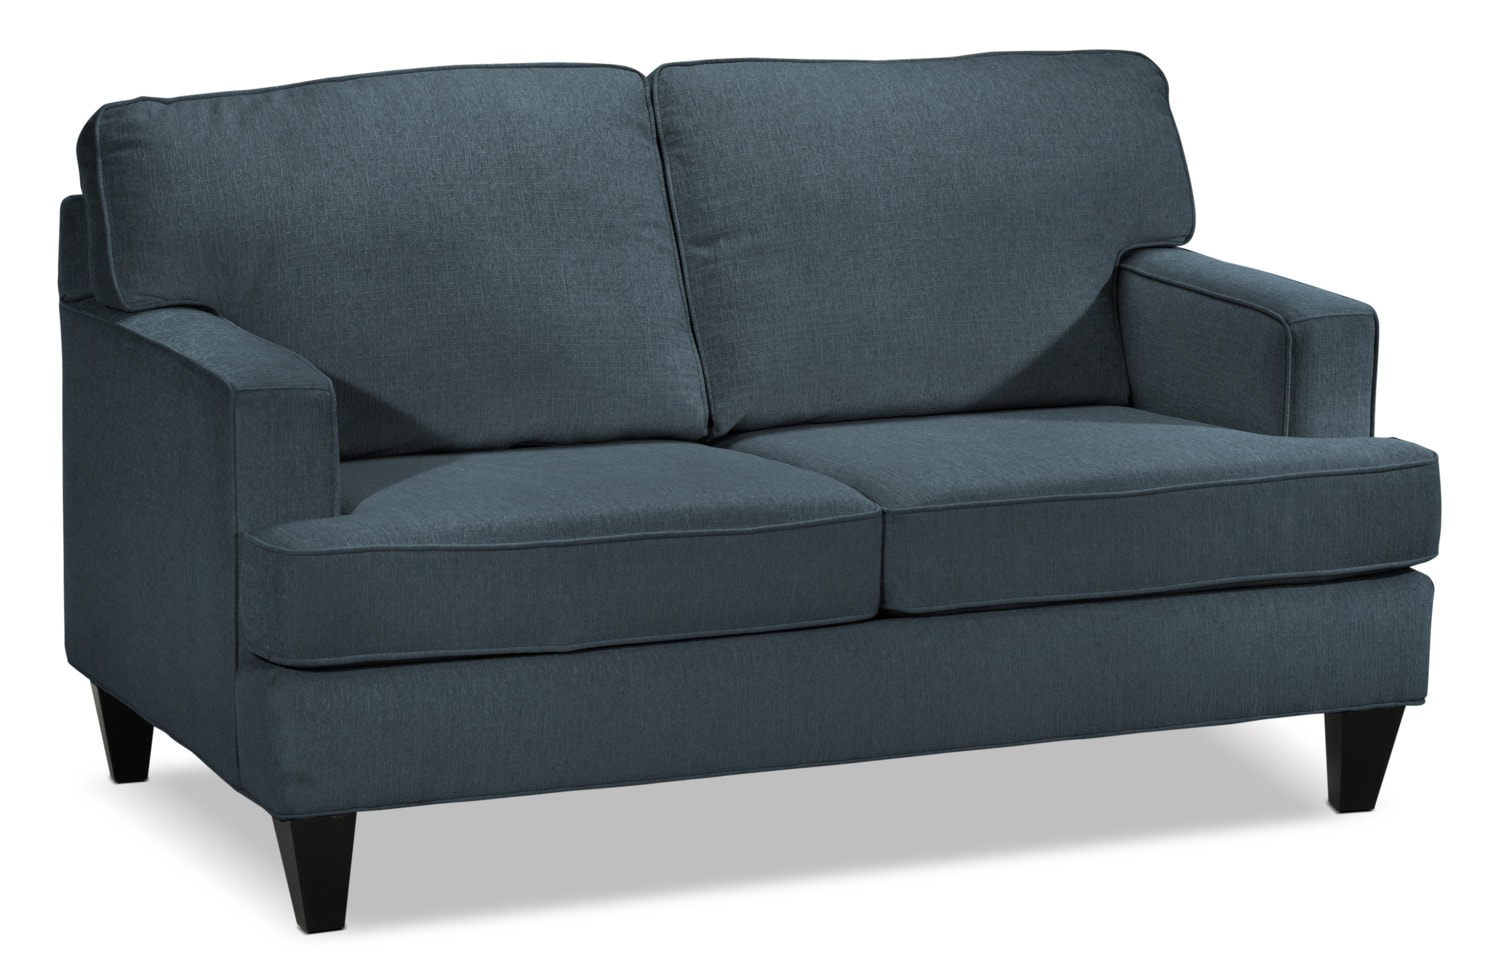 Capella Loveseat Denim Leon 39 S: denim loveseat